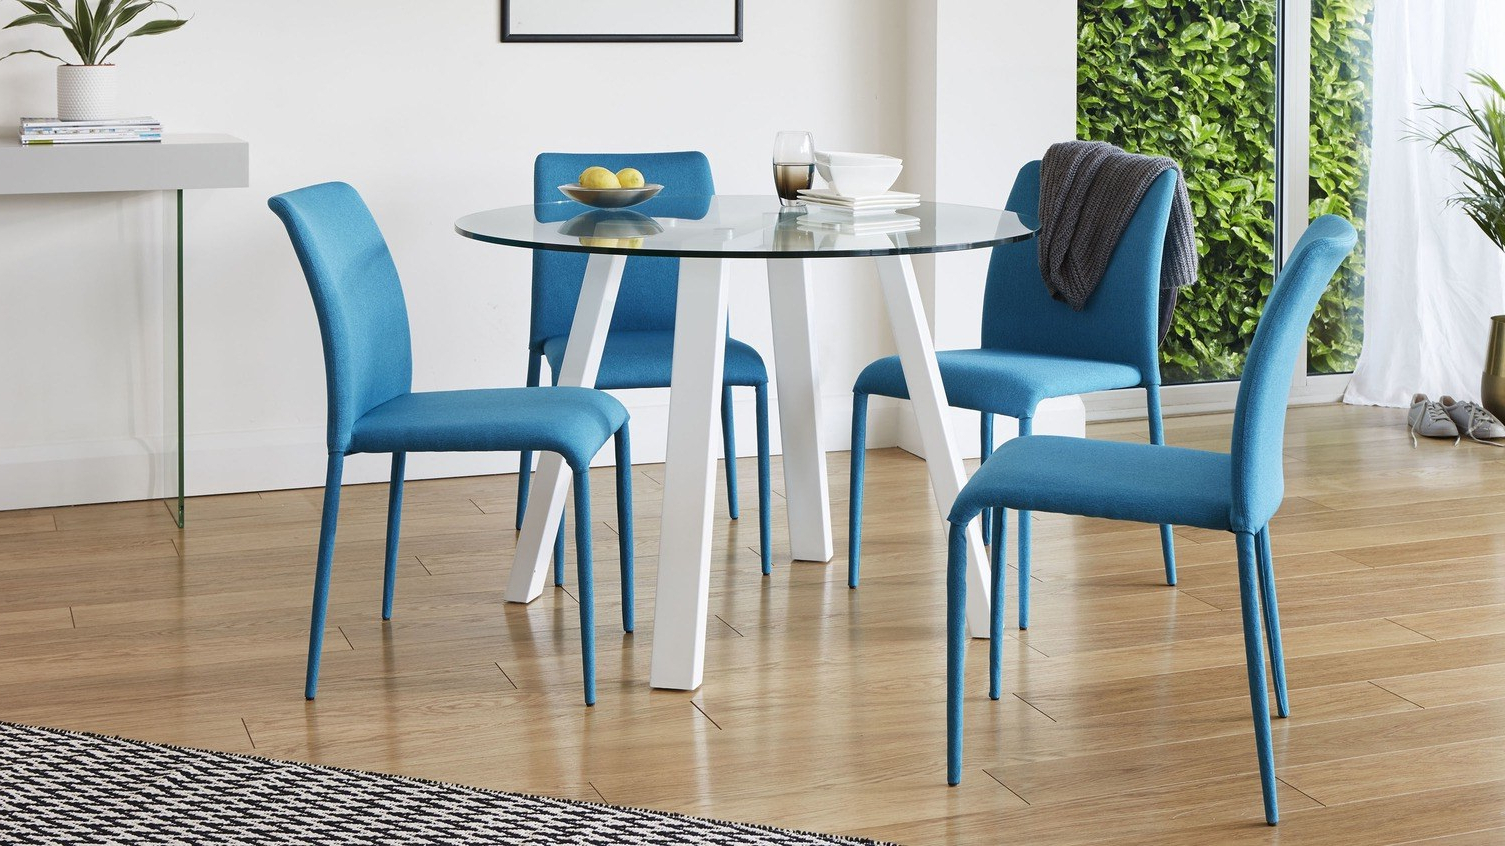 Dining Table Guide: How To Choose The Perfect Dining Table For Preferred 4 Seater Round Wooden Dining Tables With Chrome Legs (View 16 of 30)